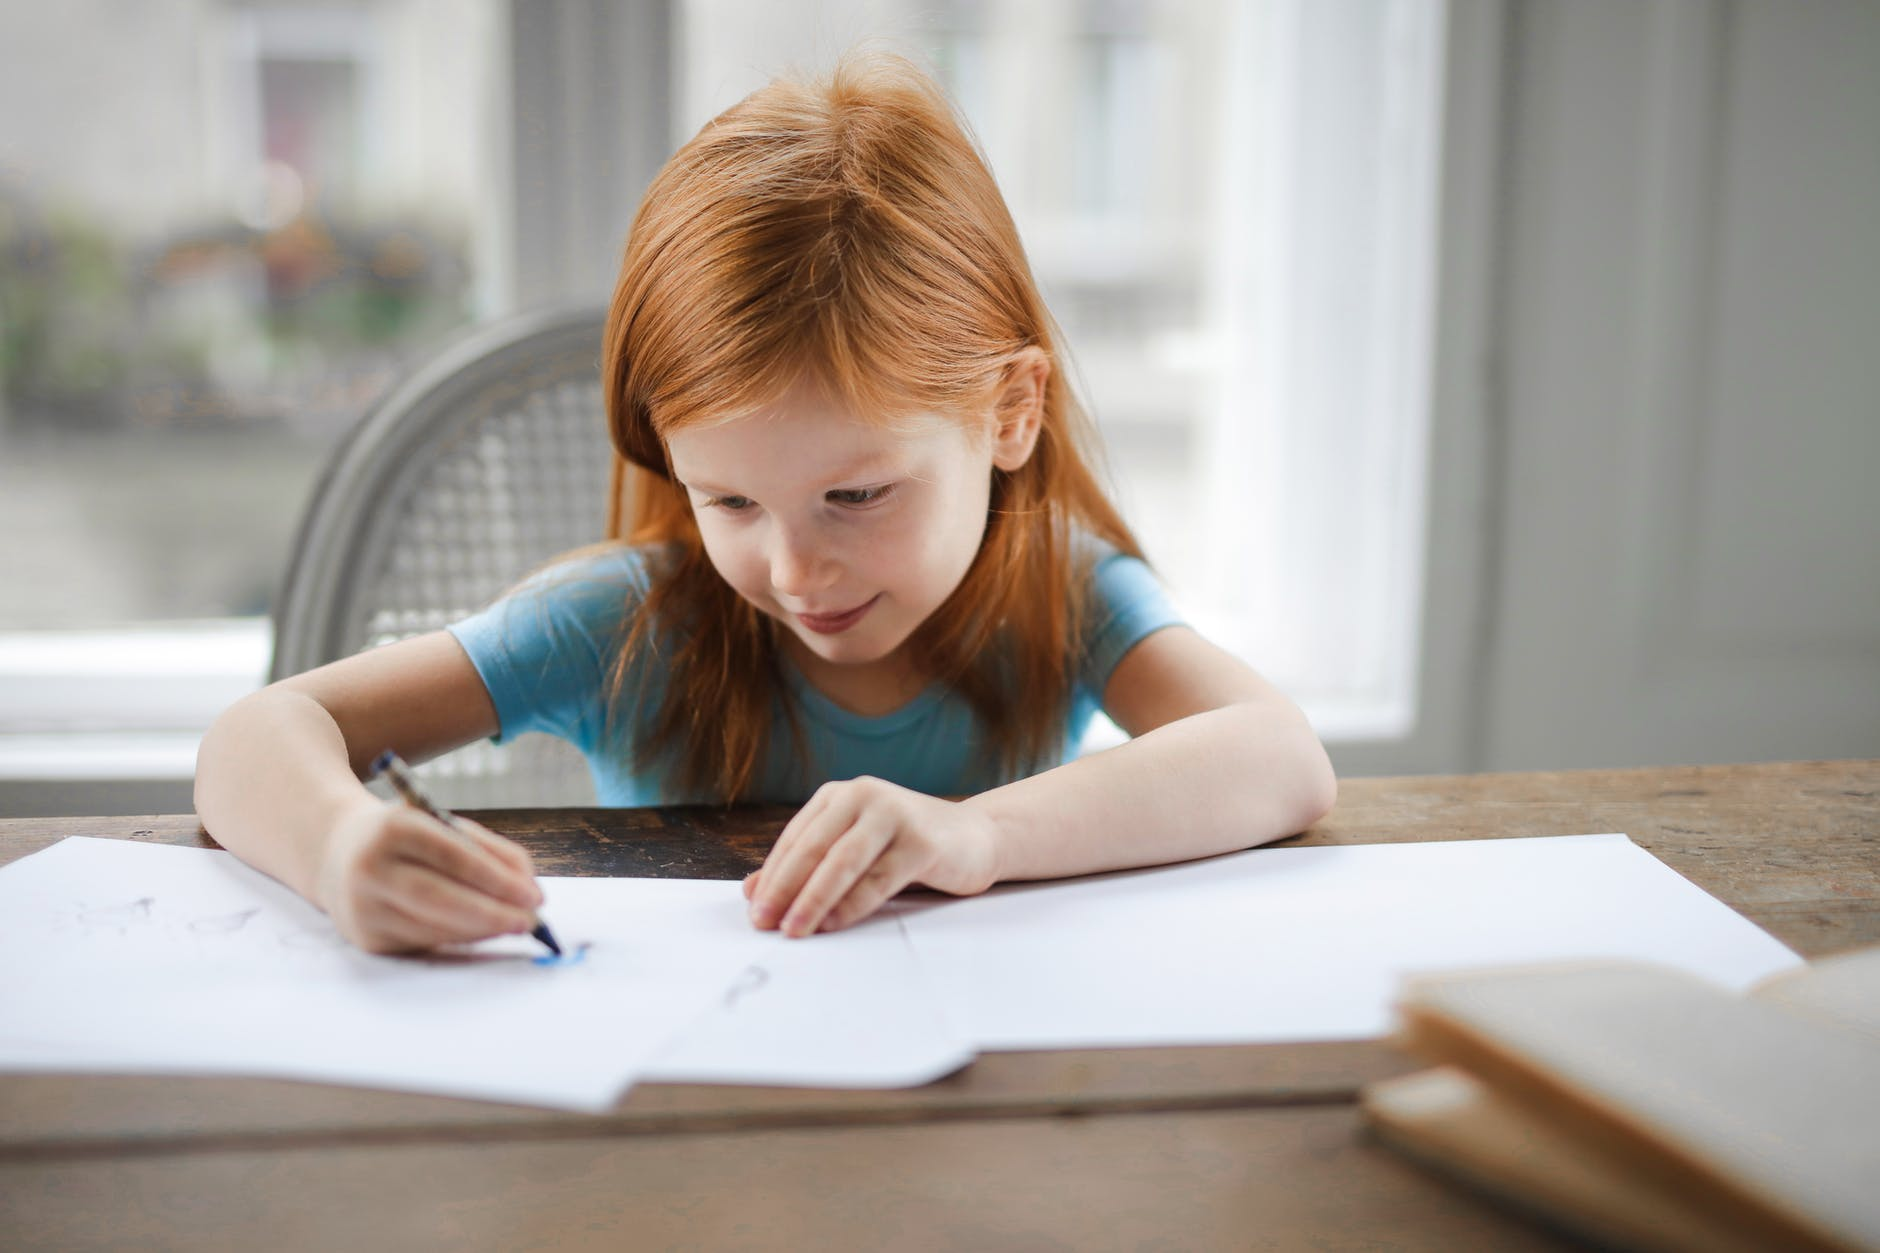 diligent small girl drawing on paper in light living room at home